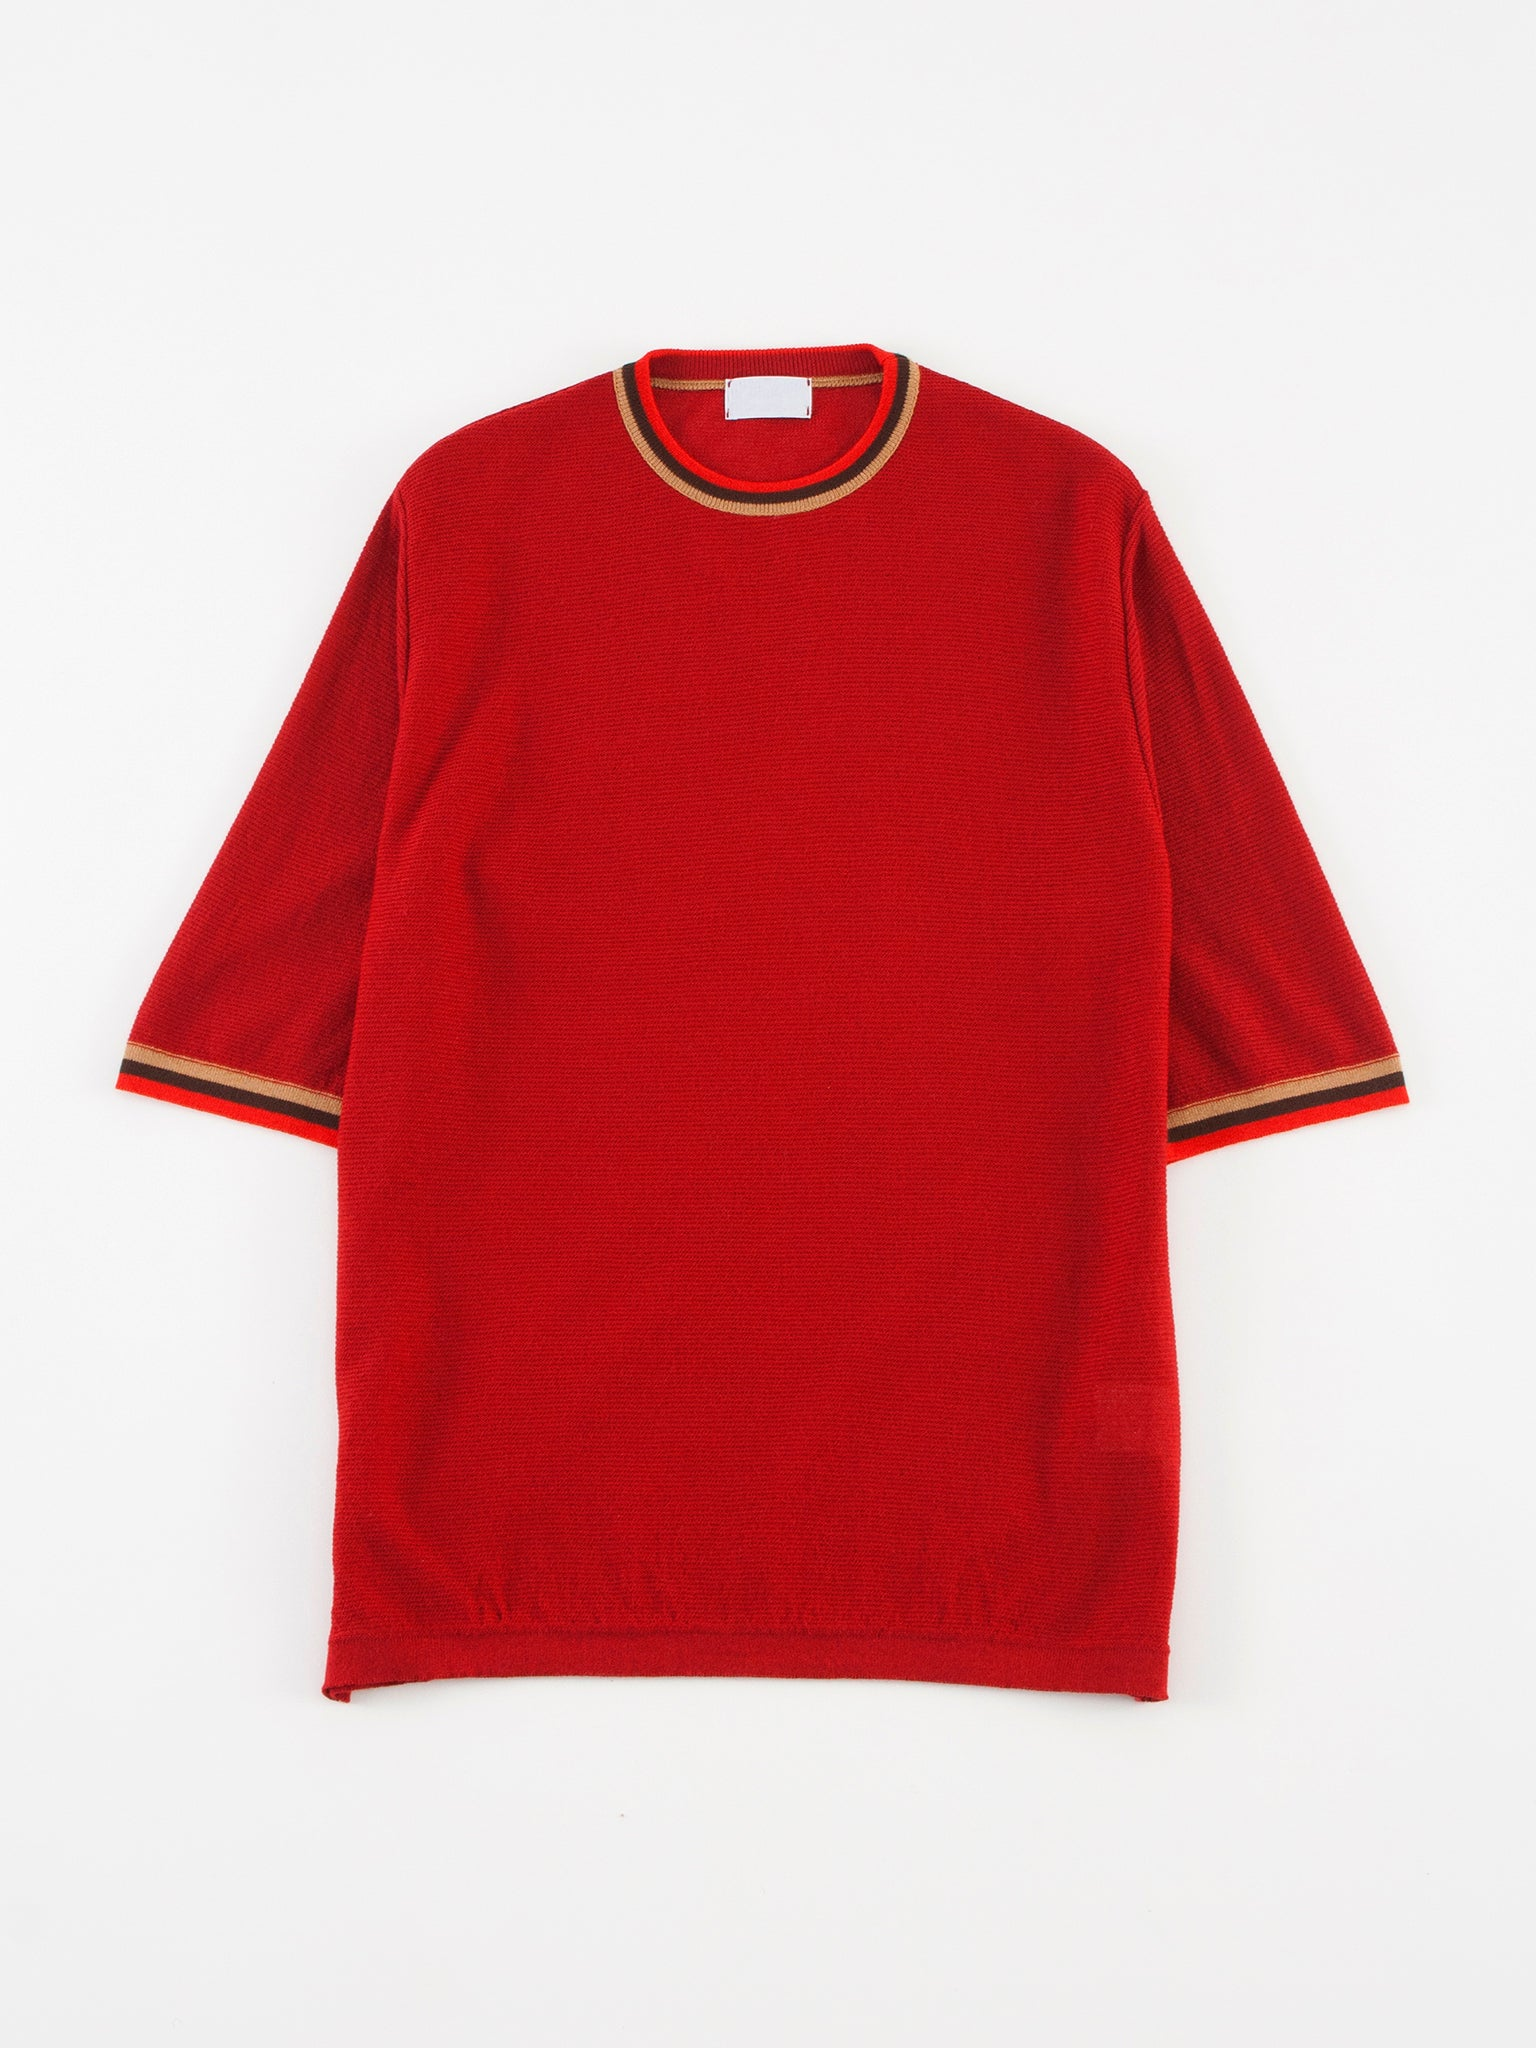 Camo Feystongal Knit T-shirt Red